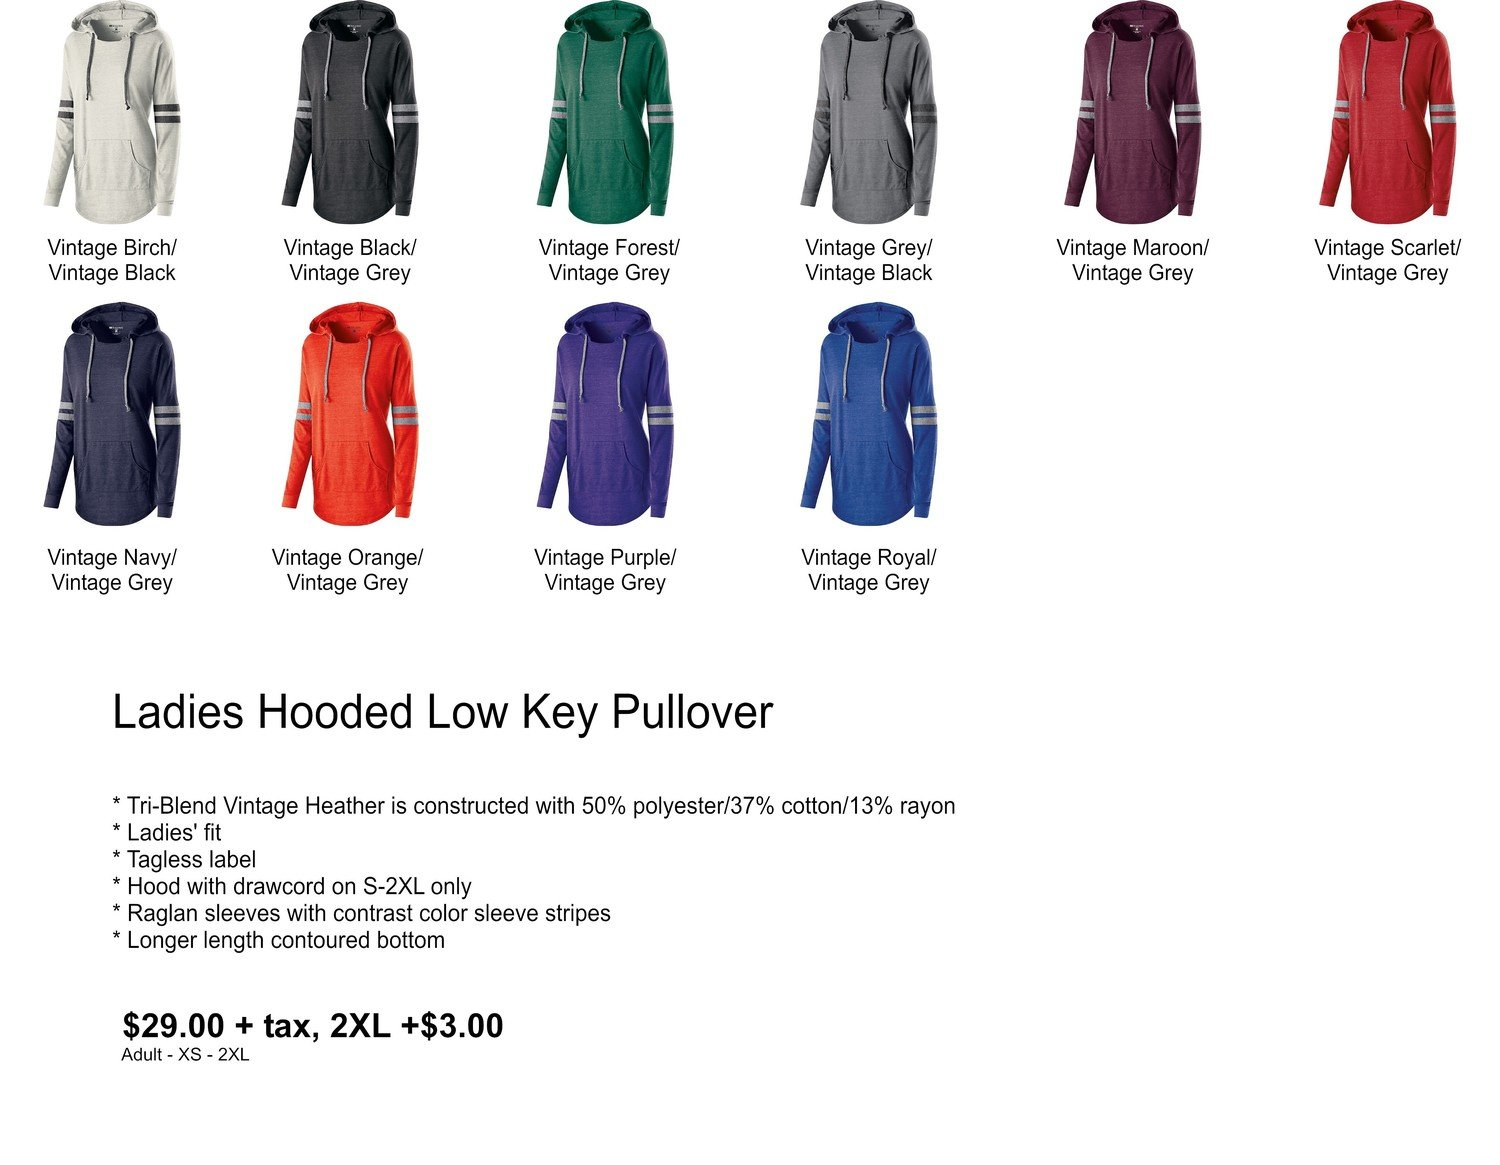 Hooded Low Key Pullover